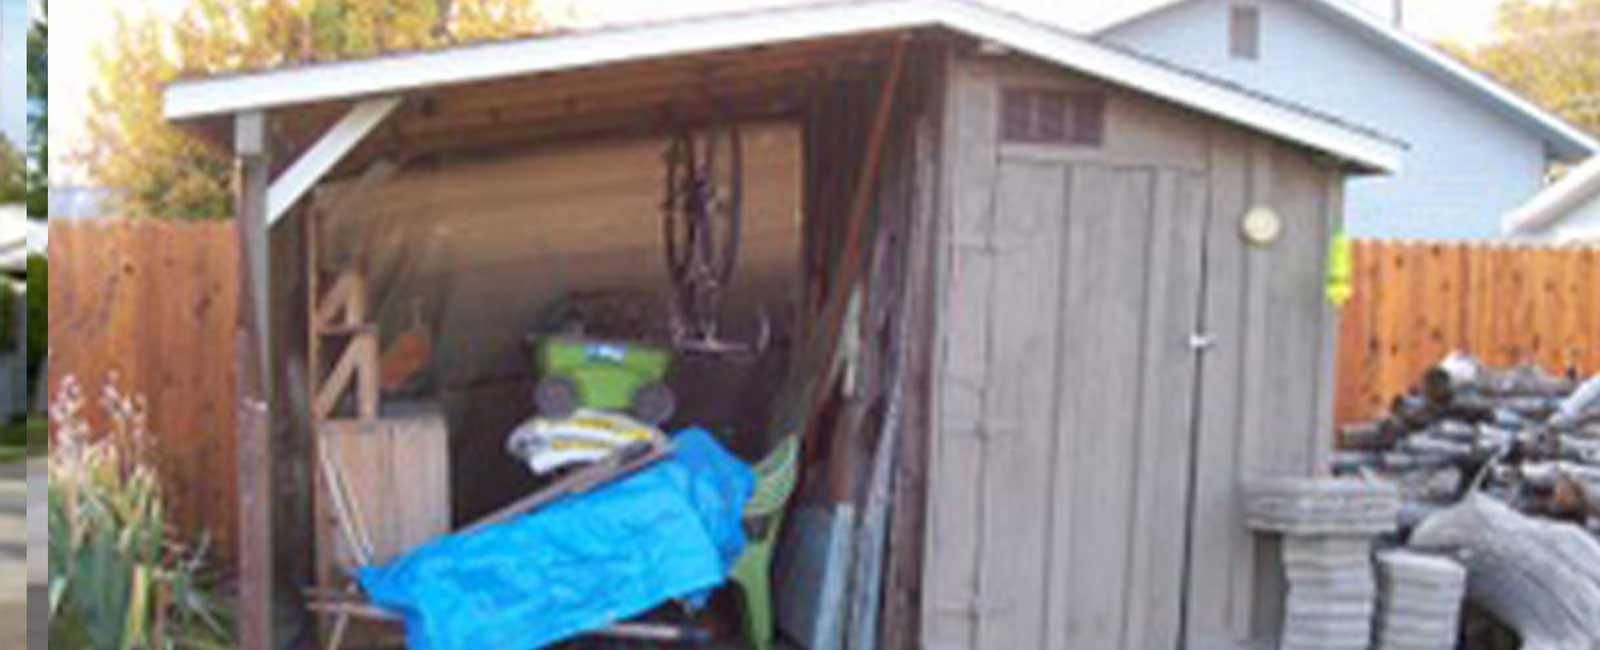 Backyard Shed - Unpainted